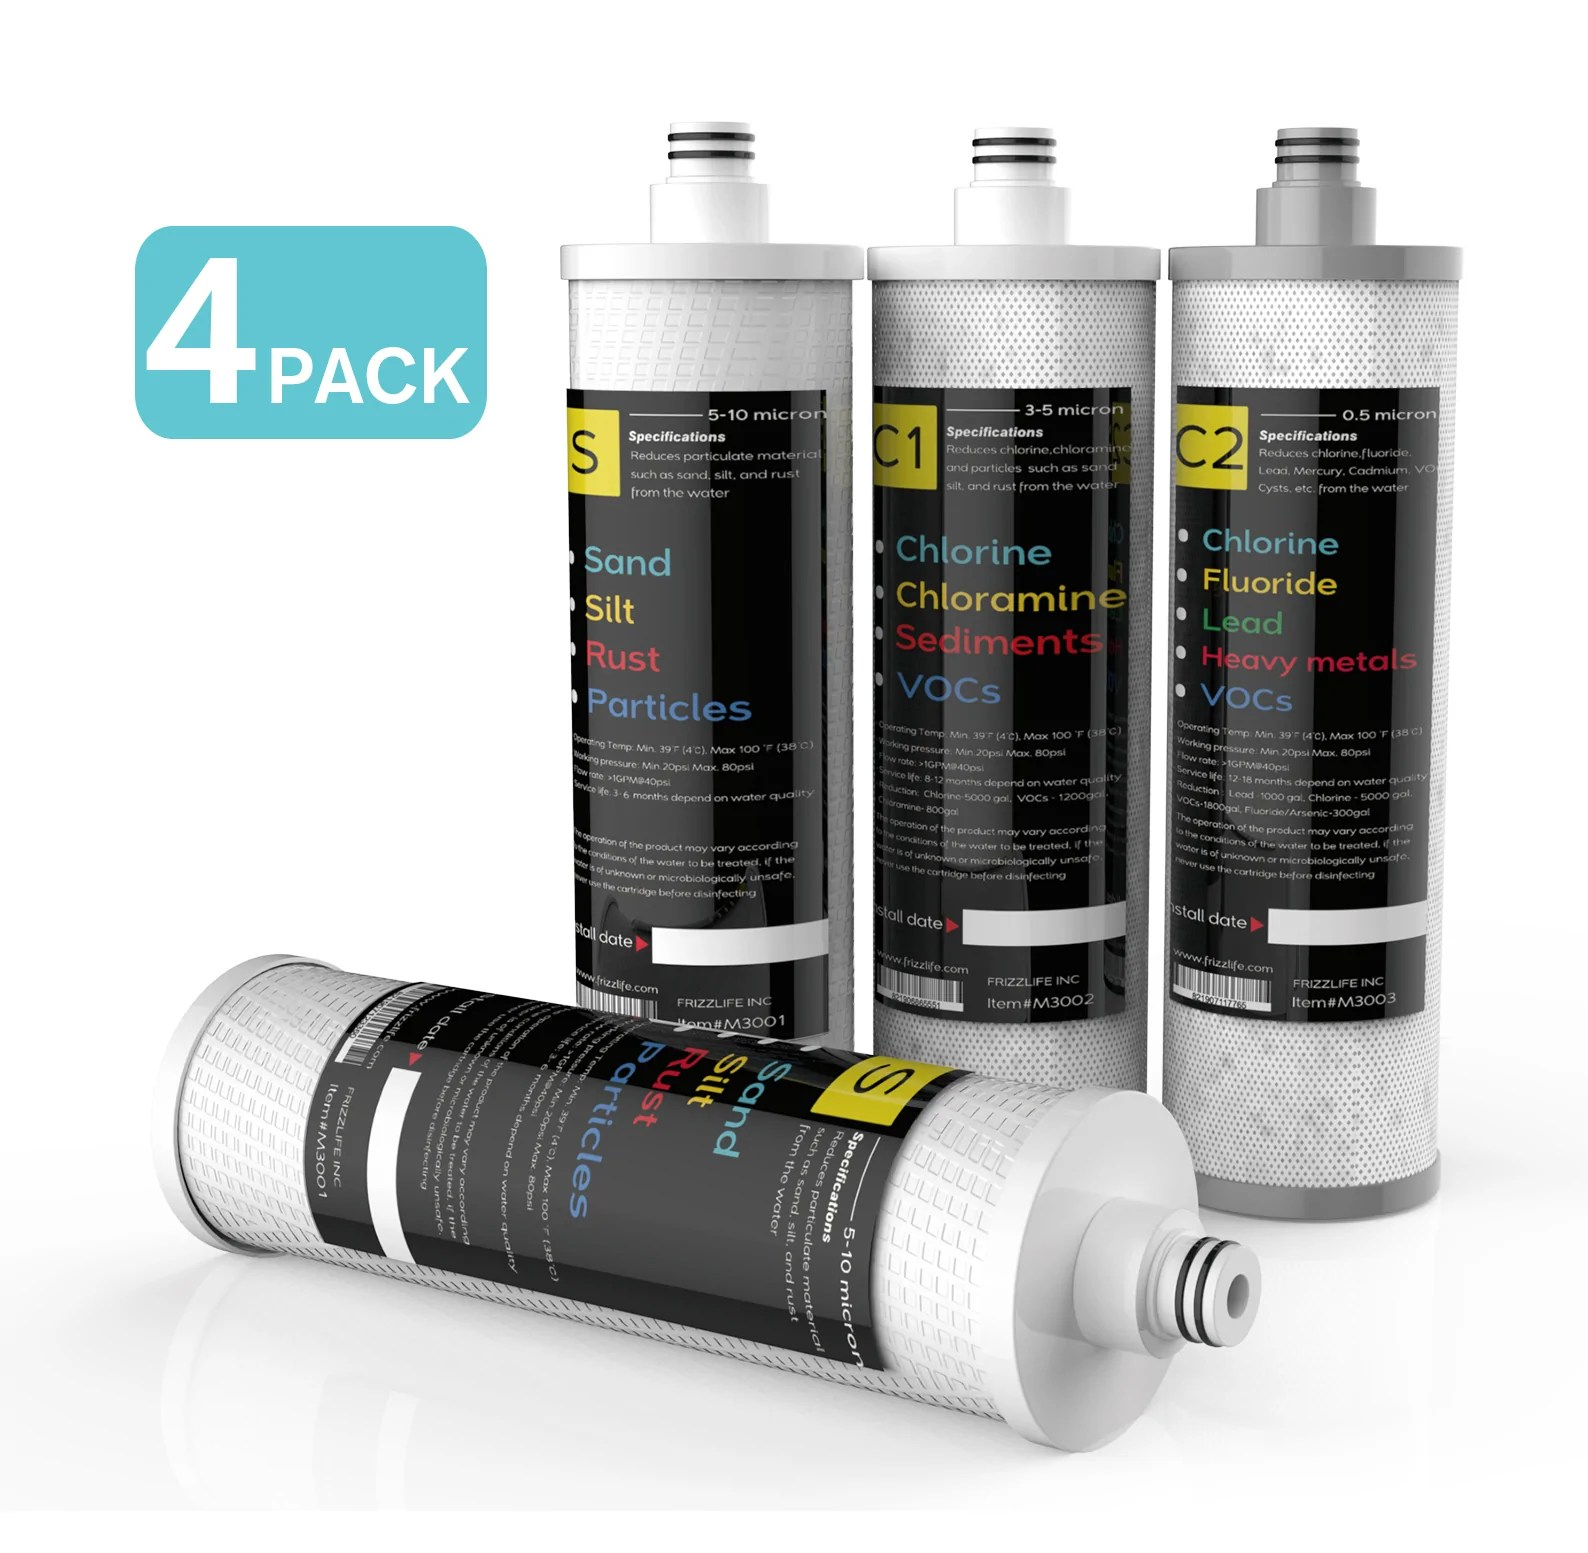 frizzlife m3005 replacement filter cartridge set 4 pack for sk99 and sp99 under sink water filter system